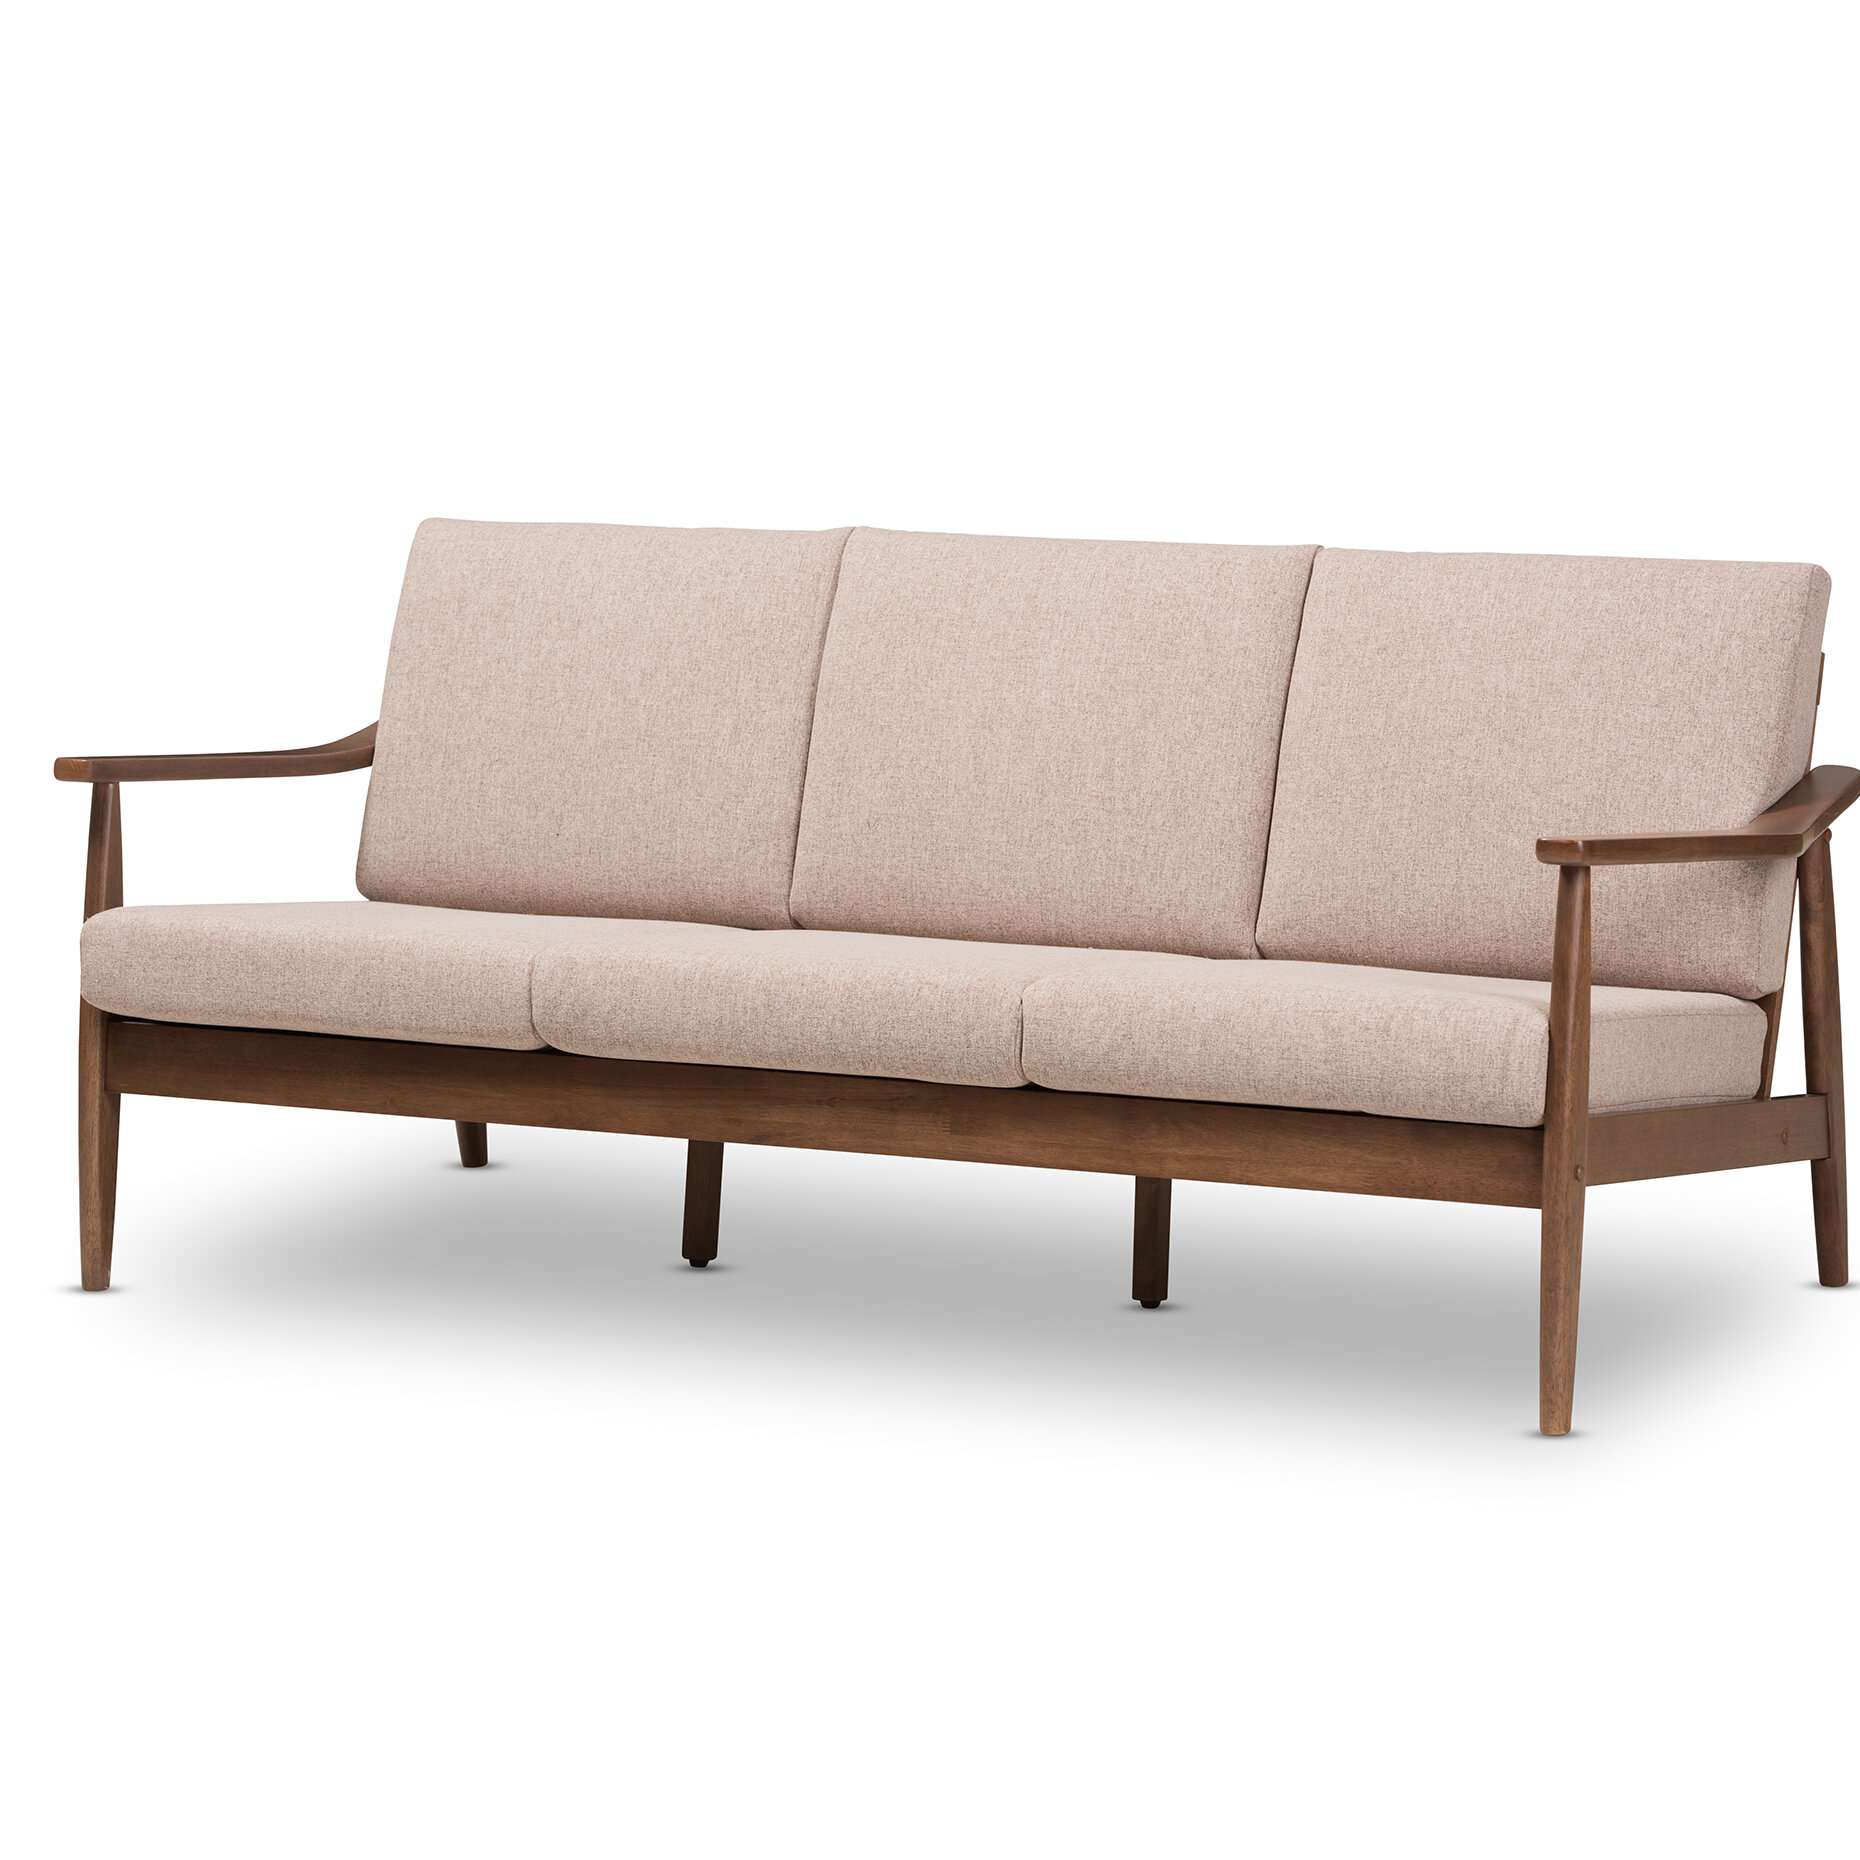 union rustic kellner mid century modern sofa reviews wayfair rh wayfair com cheap mid century modern sofa bed cheap mid century modern sofa bed